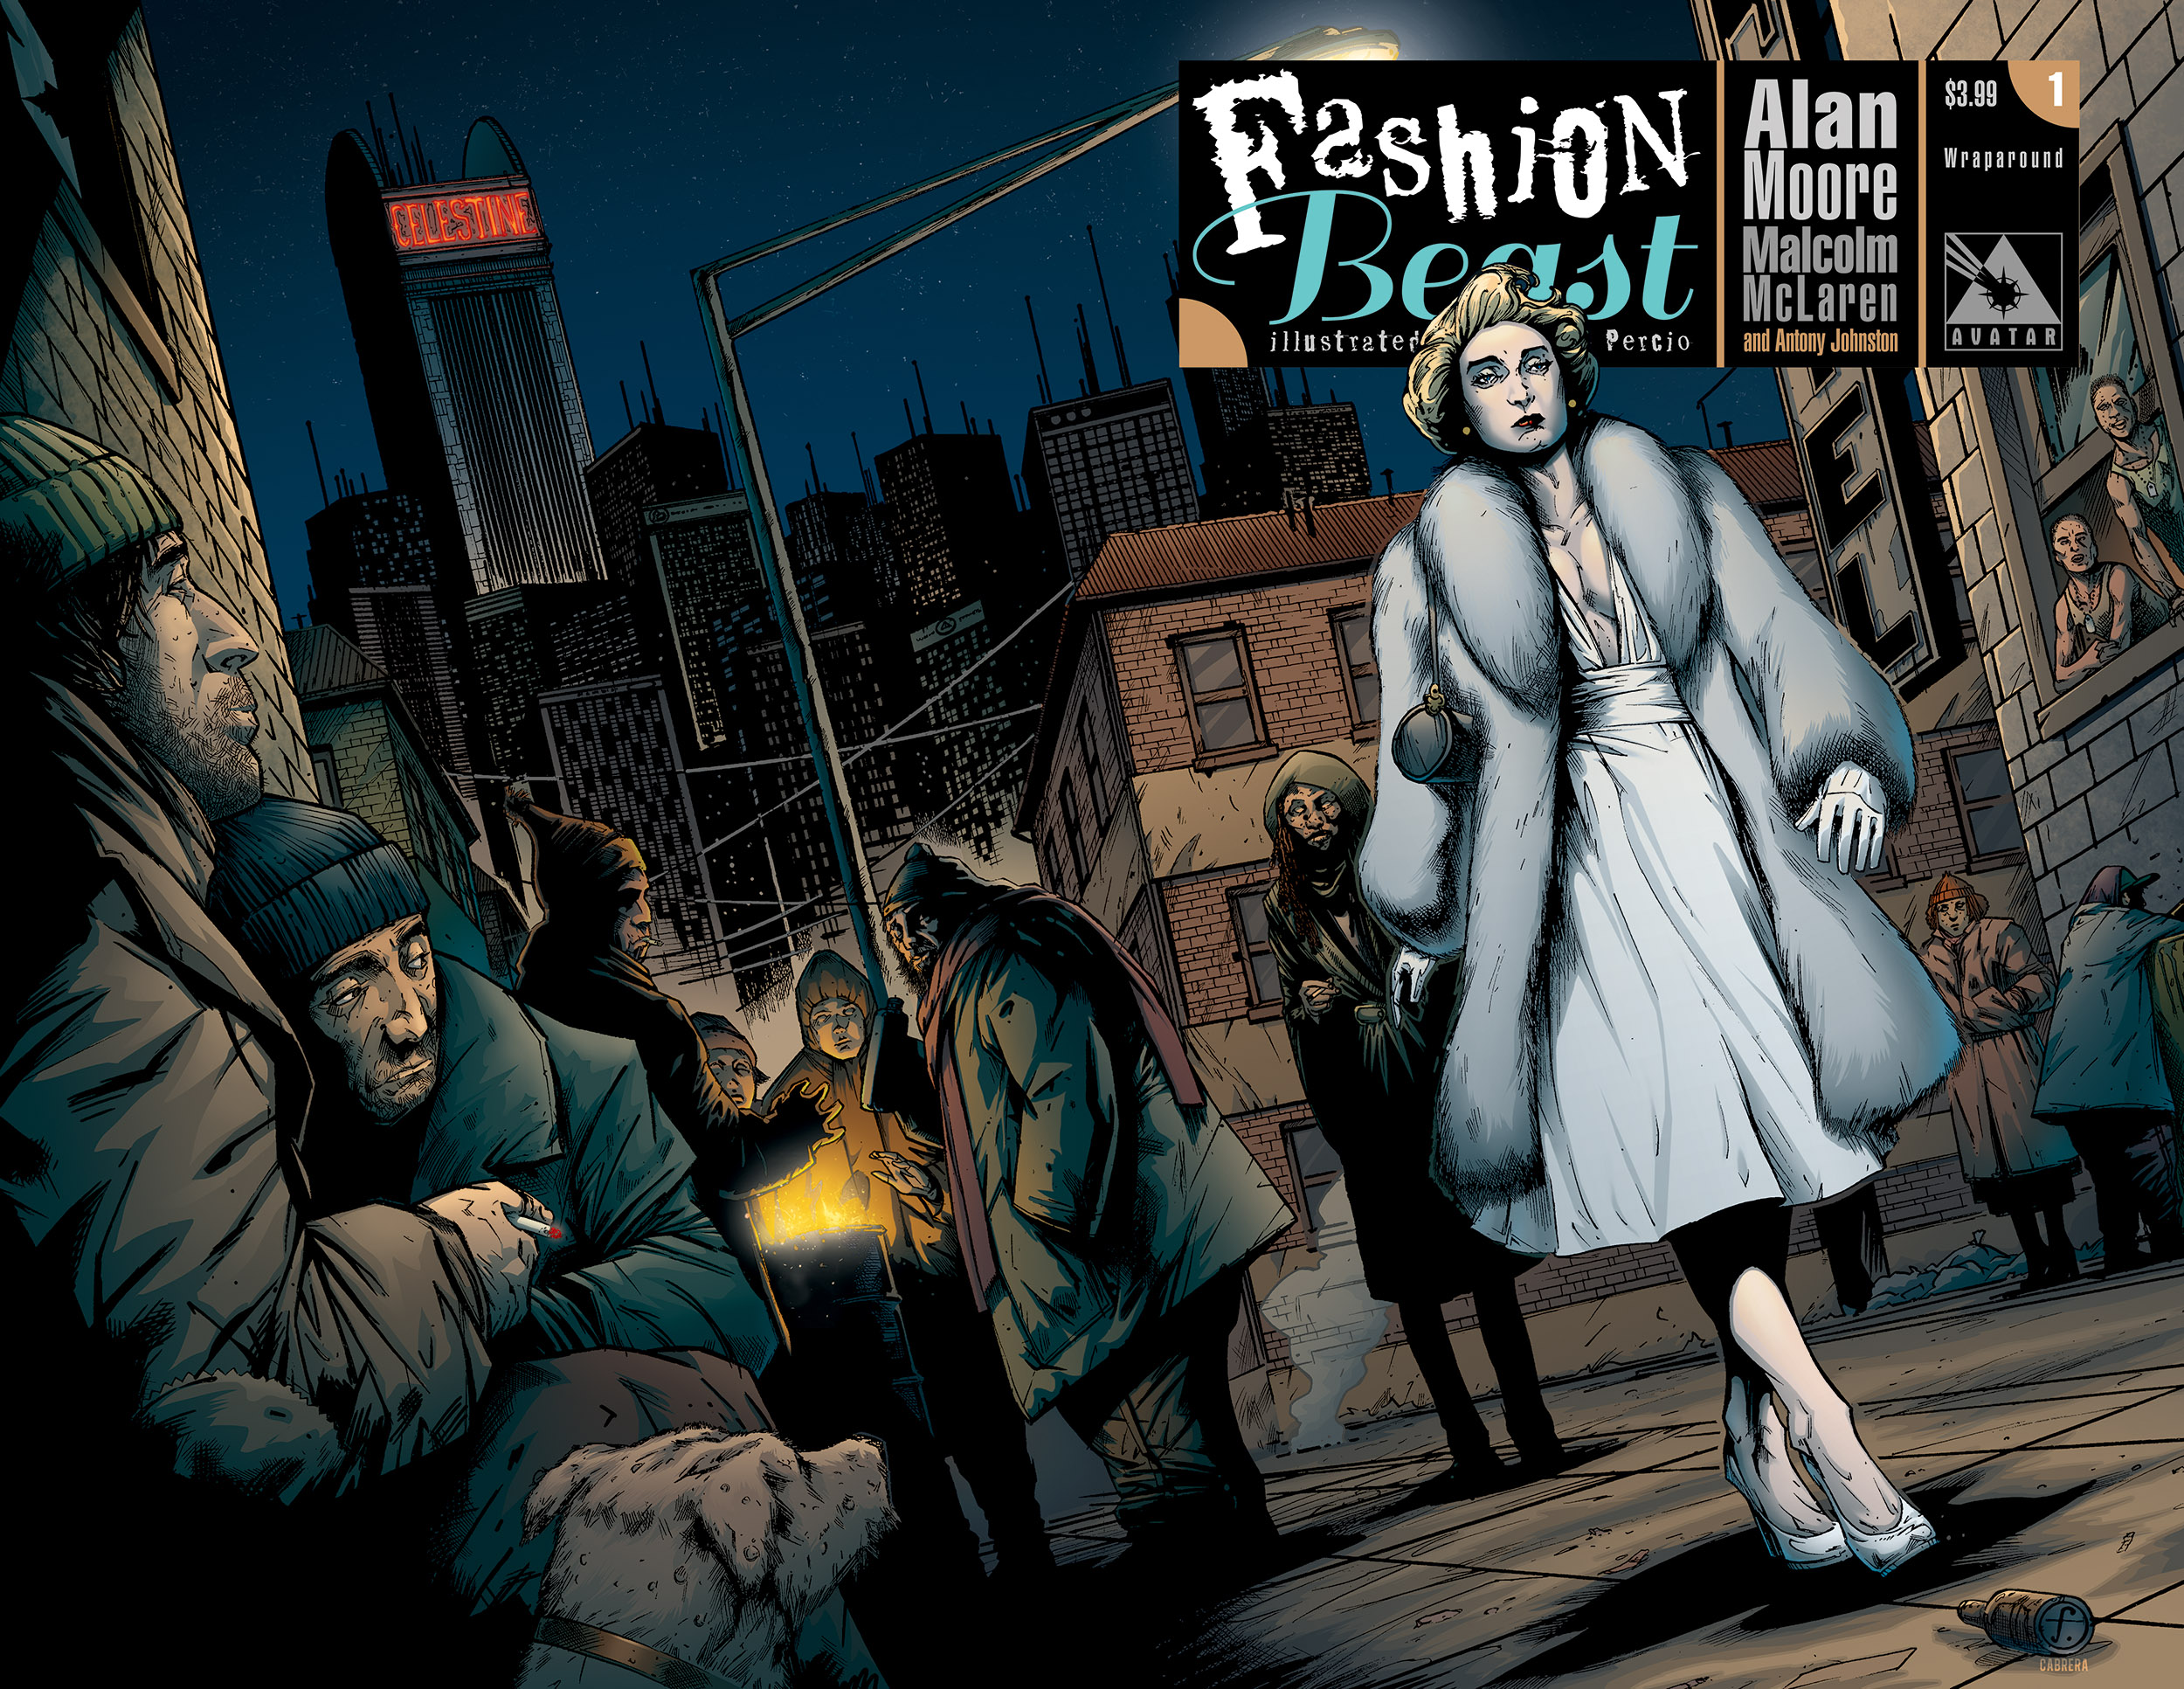 Long Lost Alan Moore Masterwork Fashion Beast Launches In